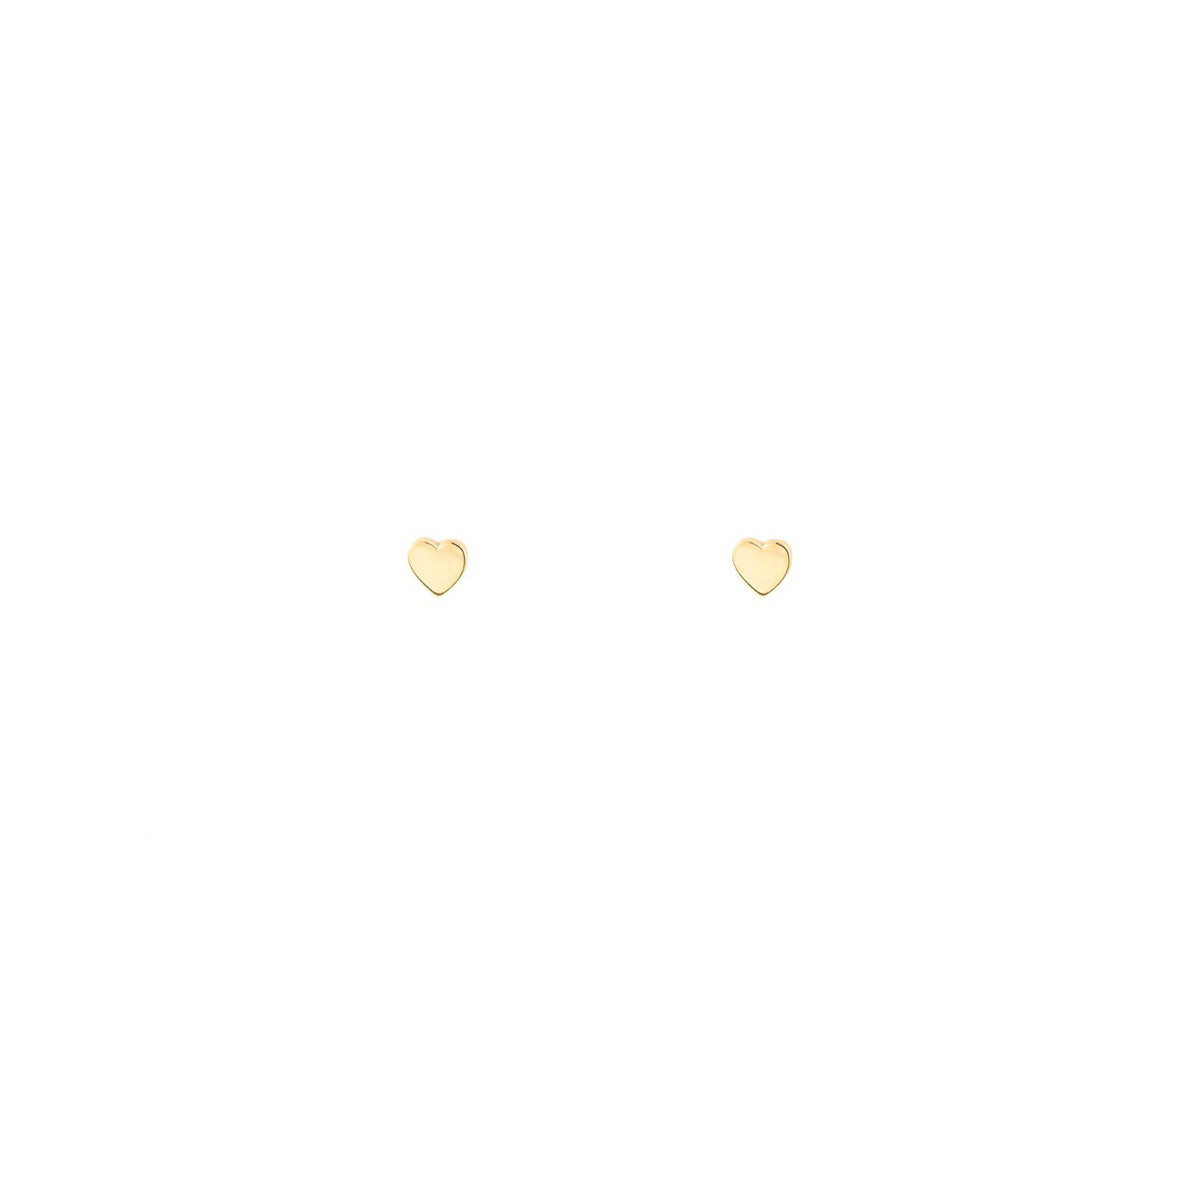 Image of Tiny Gold Heart Stud Earrings